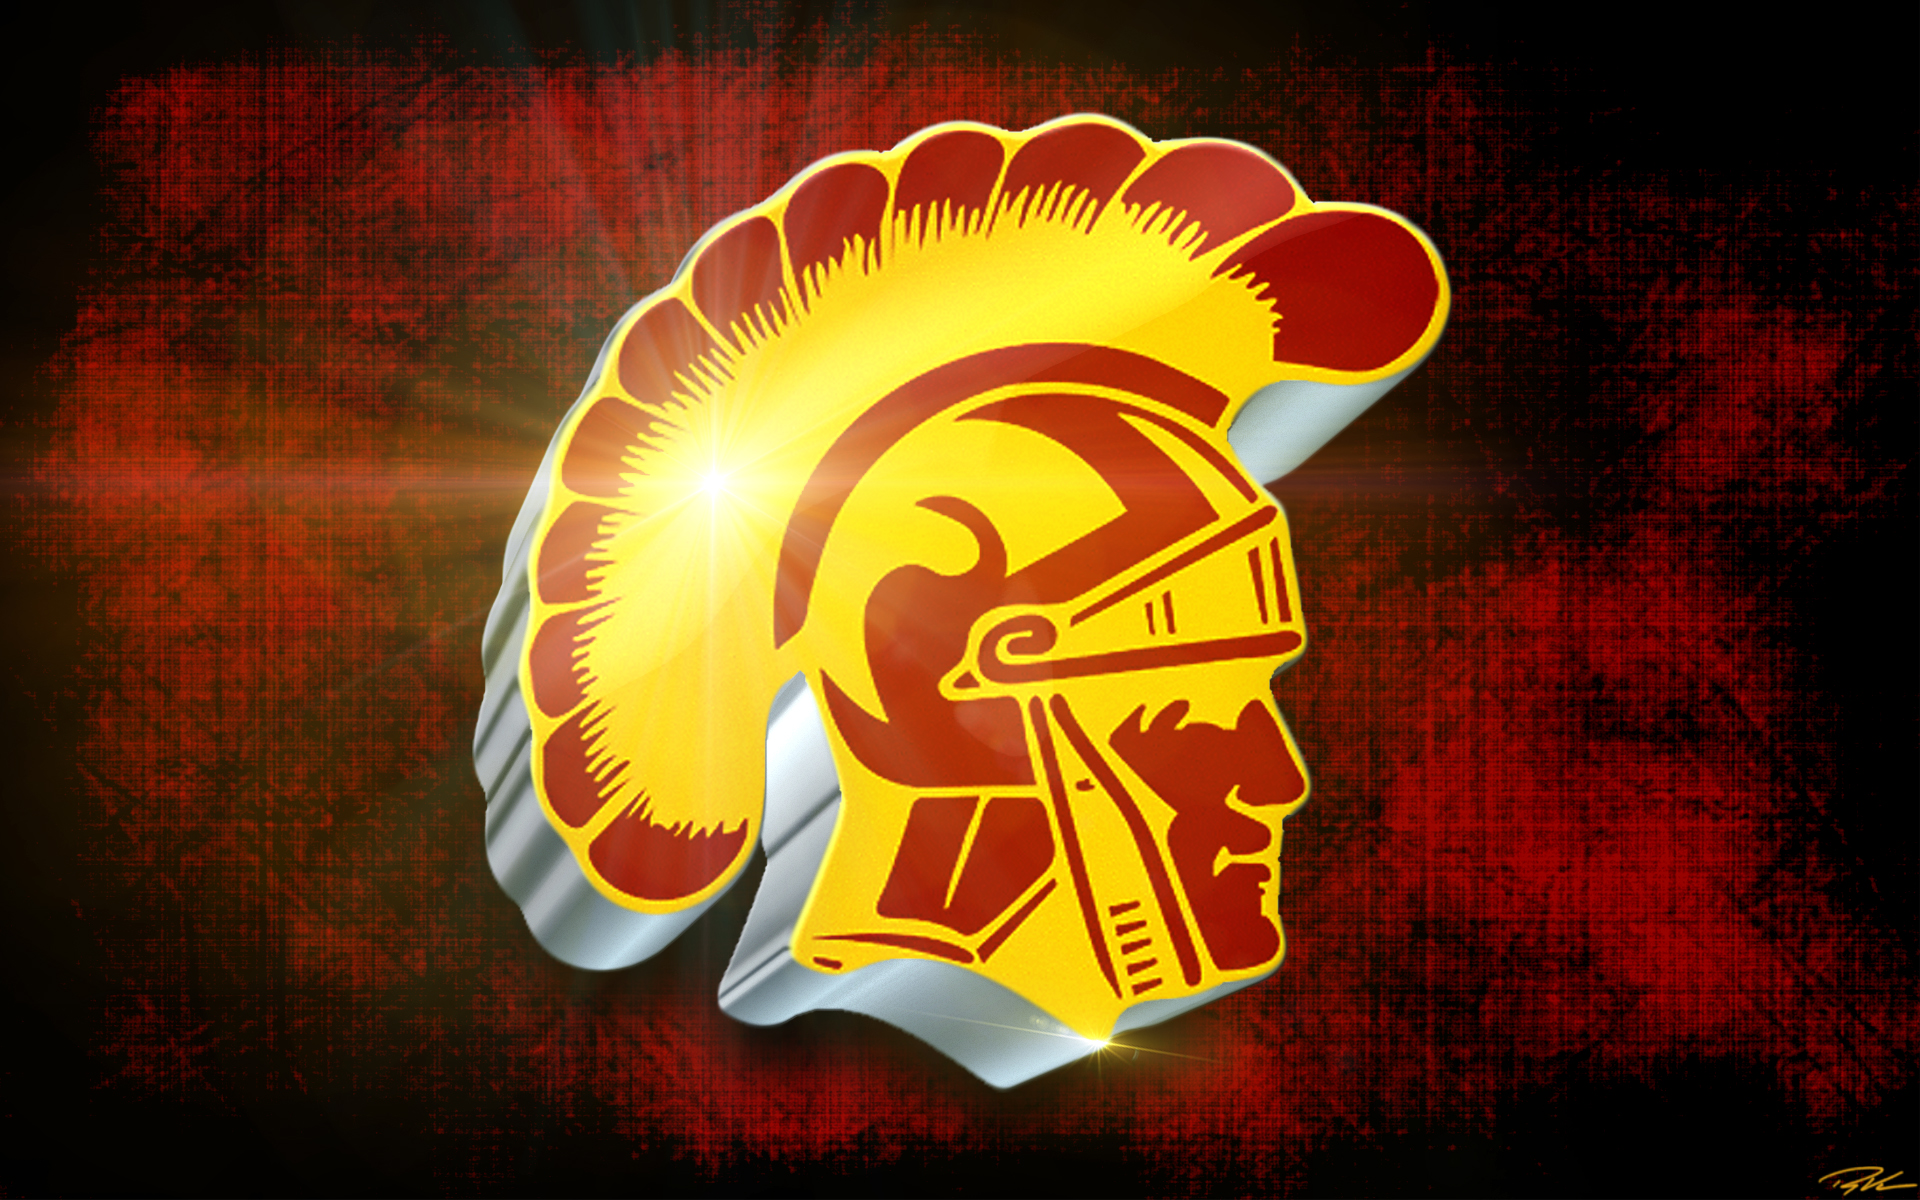 USC TROJANS wallpaper   ForWallpapercom 1920x1200